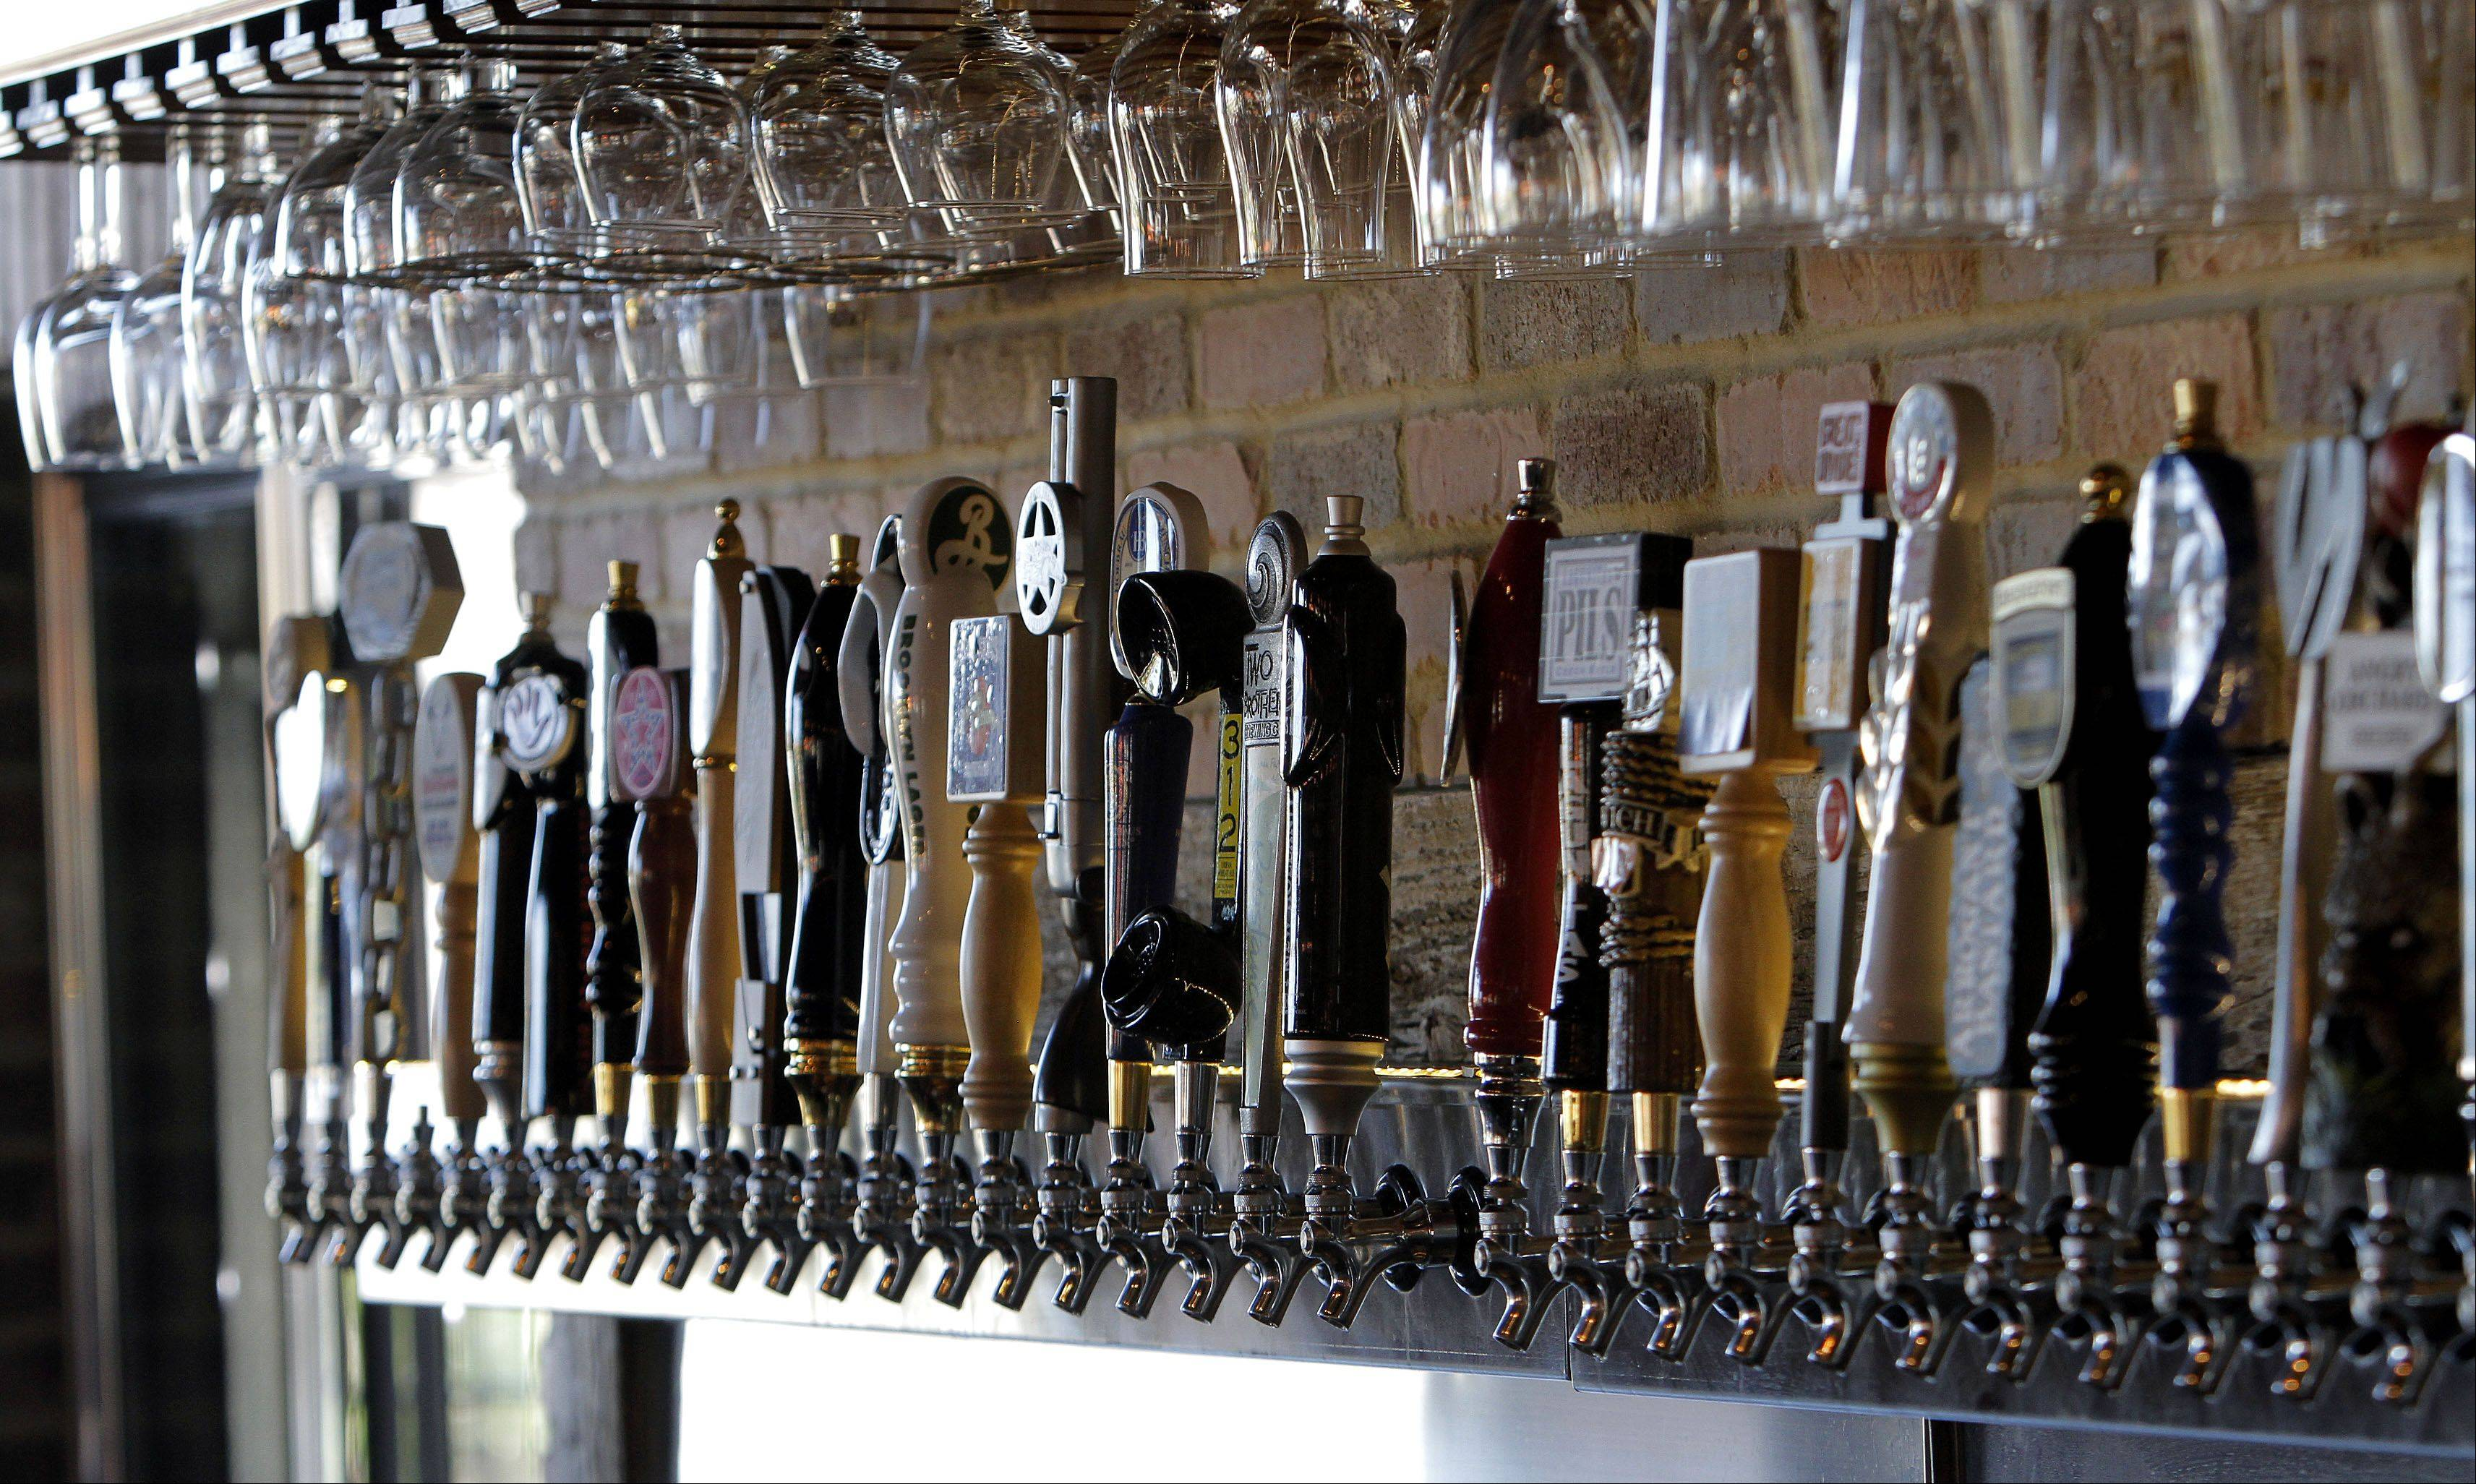 Taps line the back wall at the Beer Market in Vernon Hills.